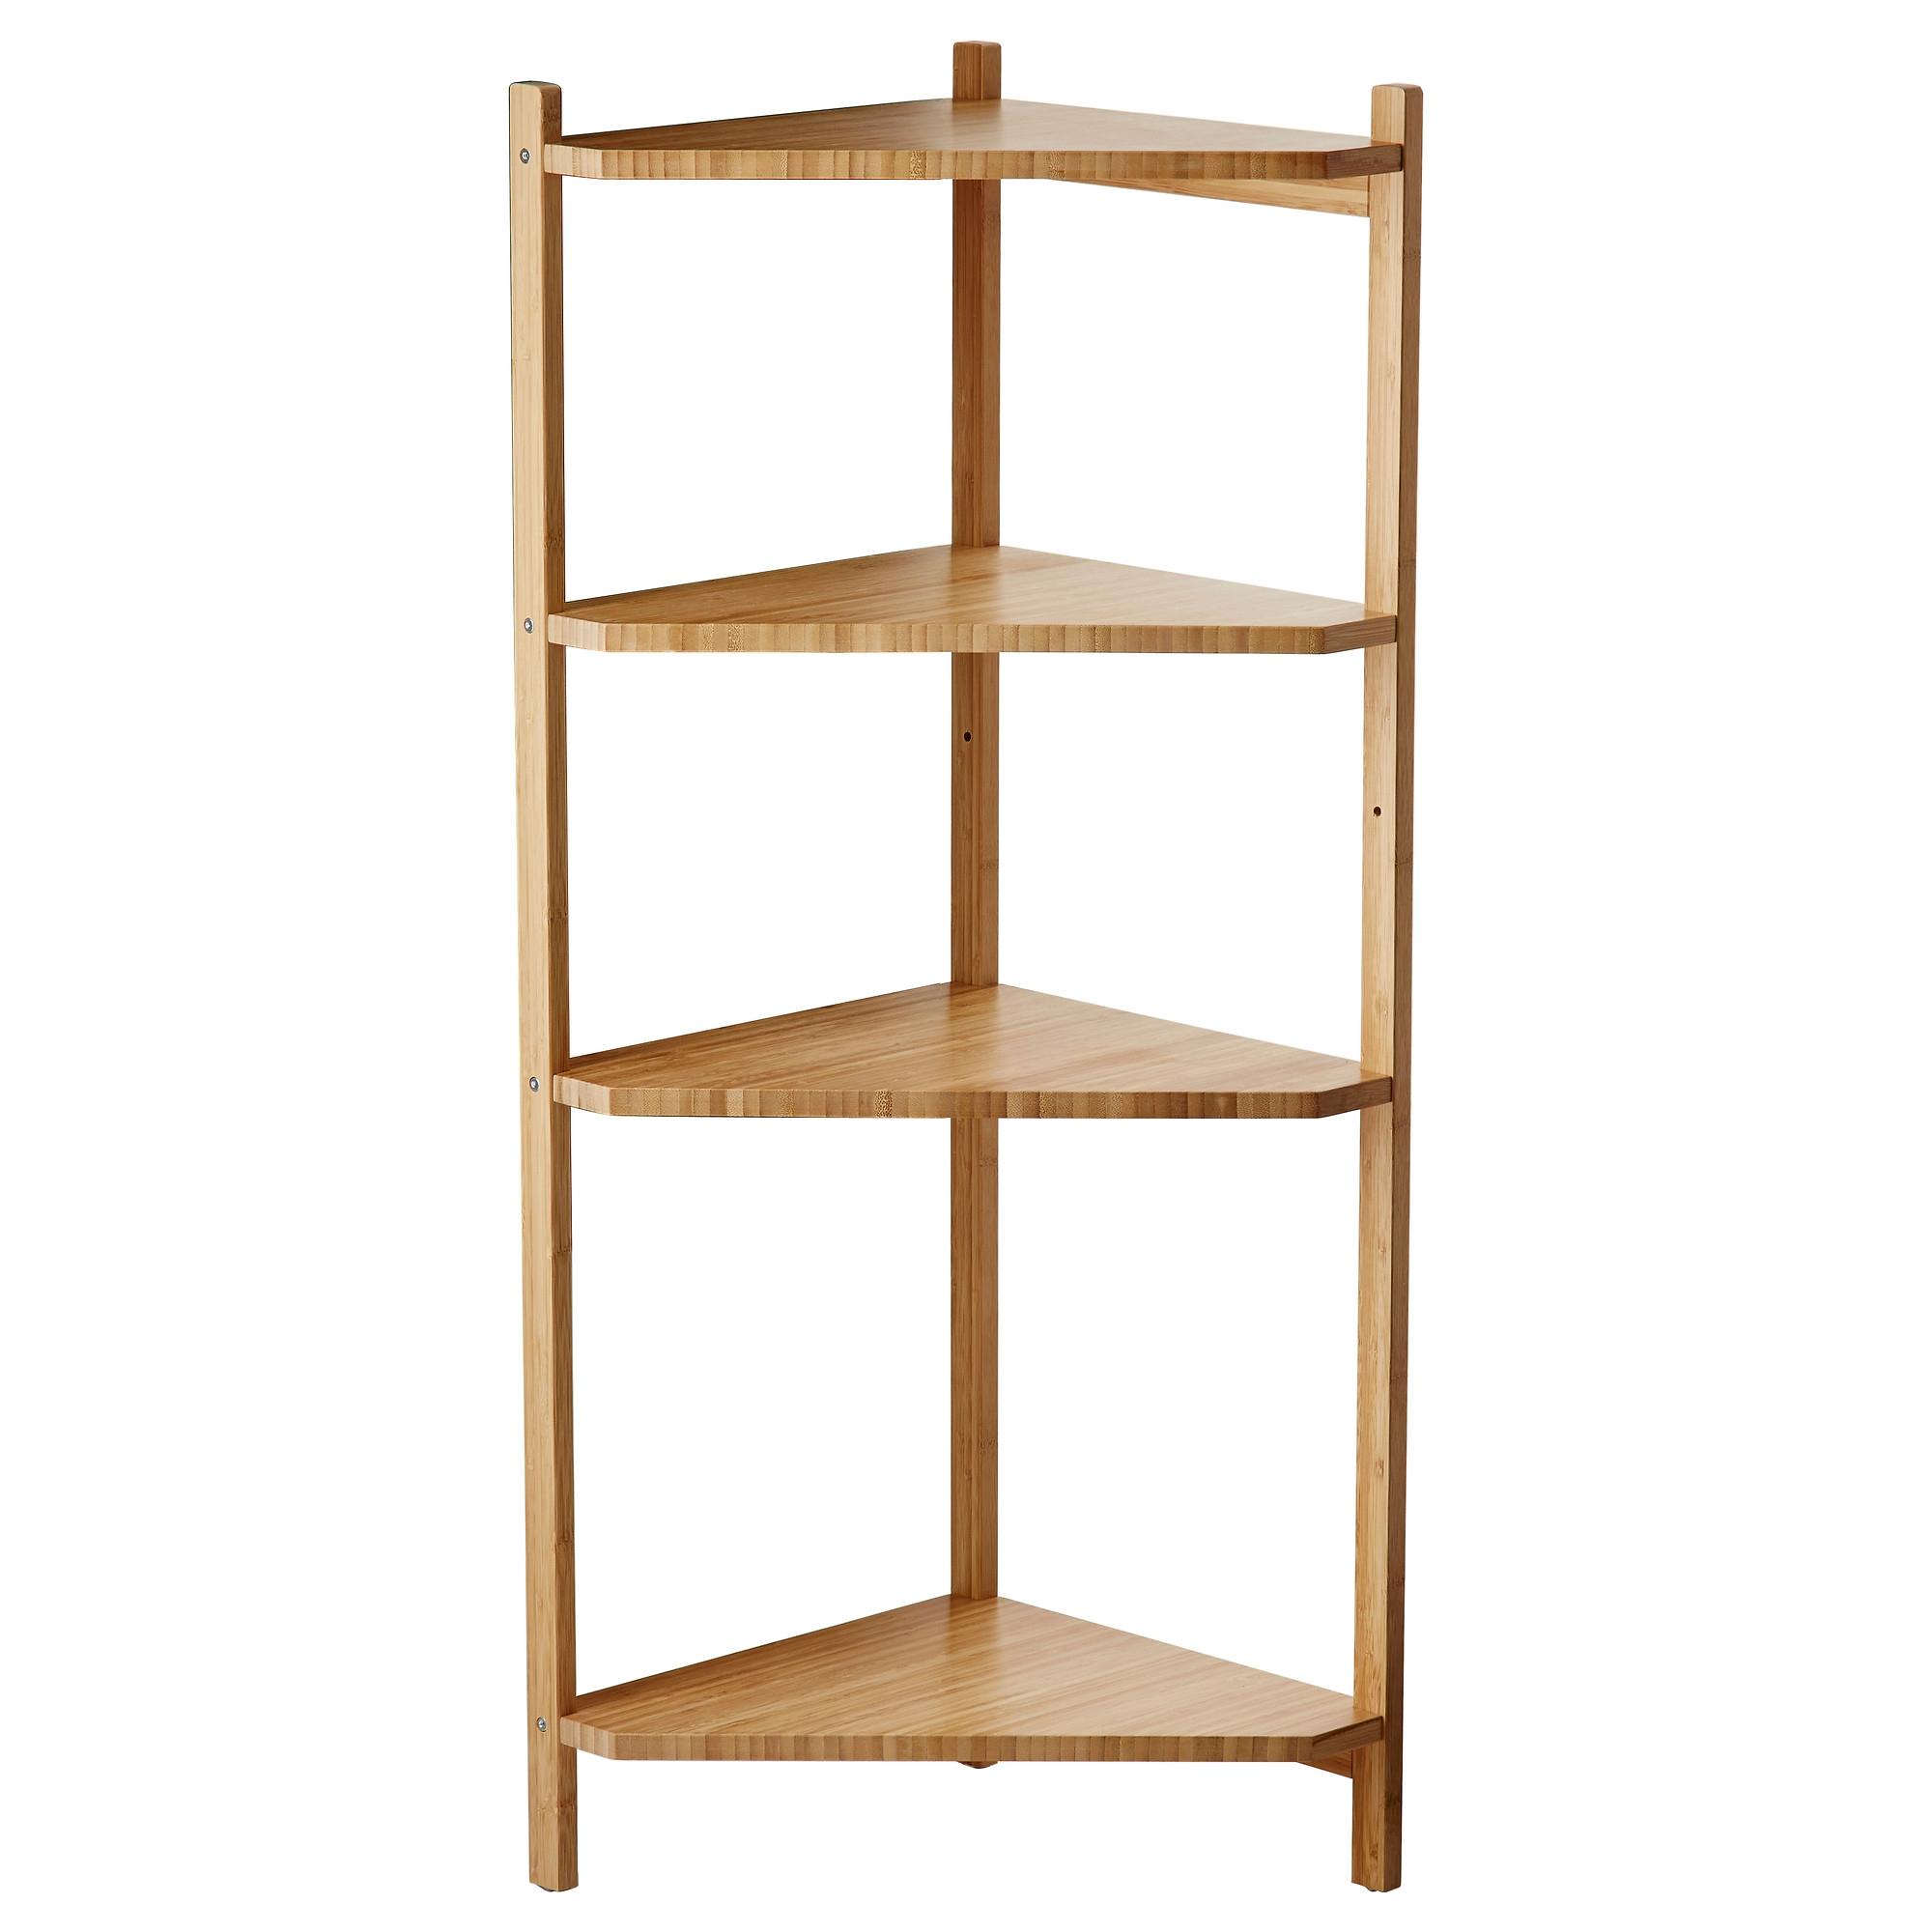 Rgrund Corner Shelf Unit Ikea For Corner Shelf (#9 of 12)